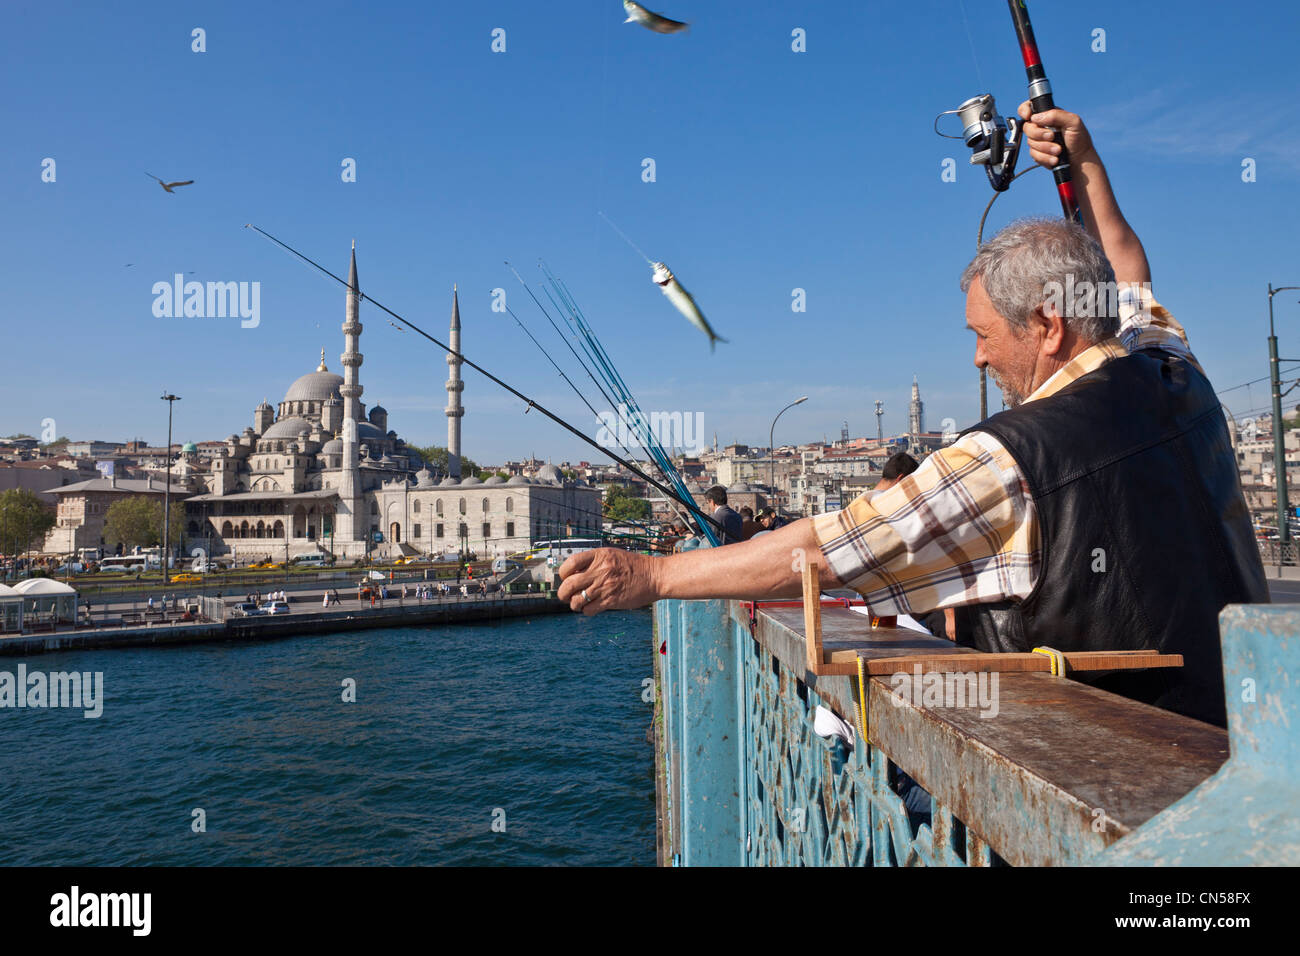 Turkey, Istanbul, strait of the Golden Horn, fishermen on Galata bridge - Stock Image